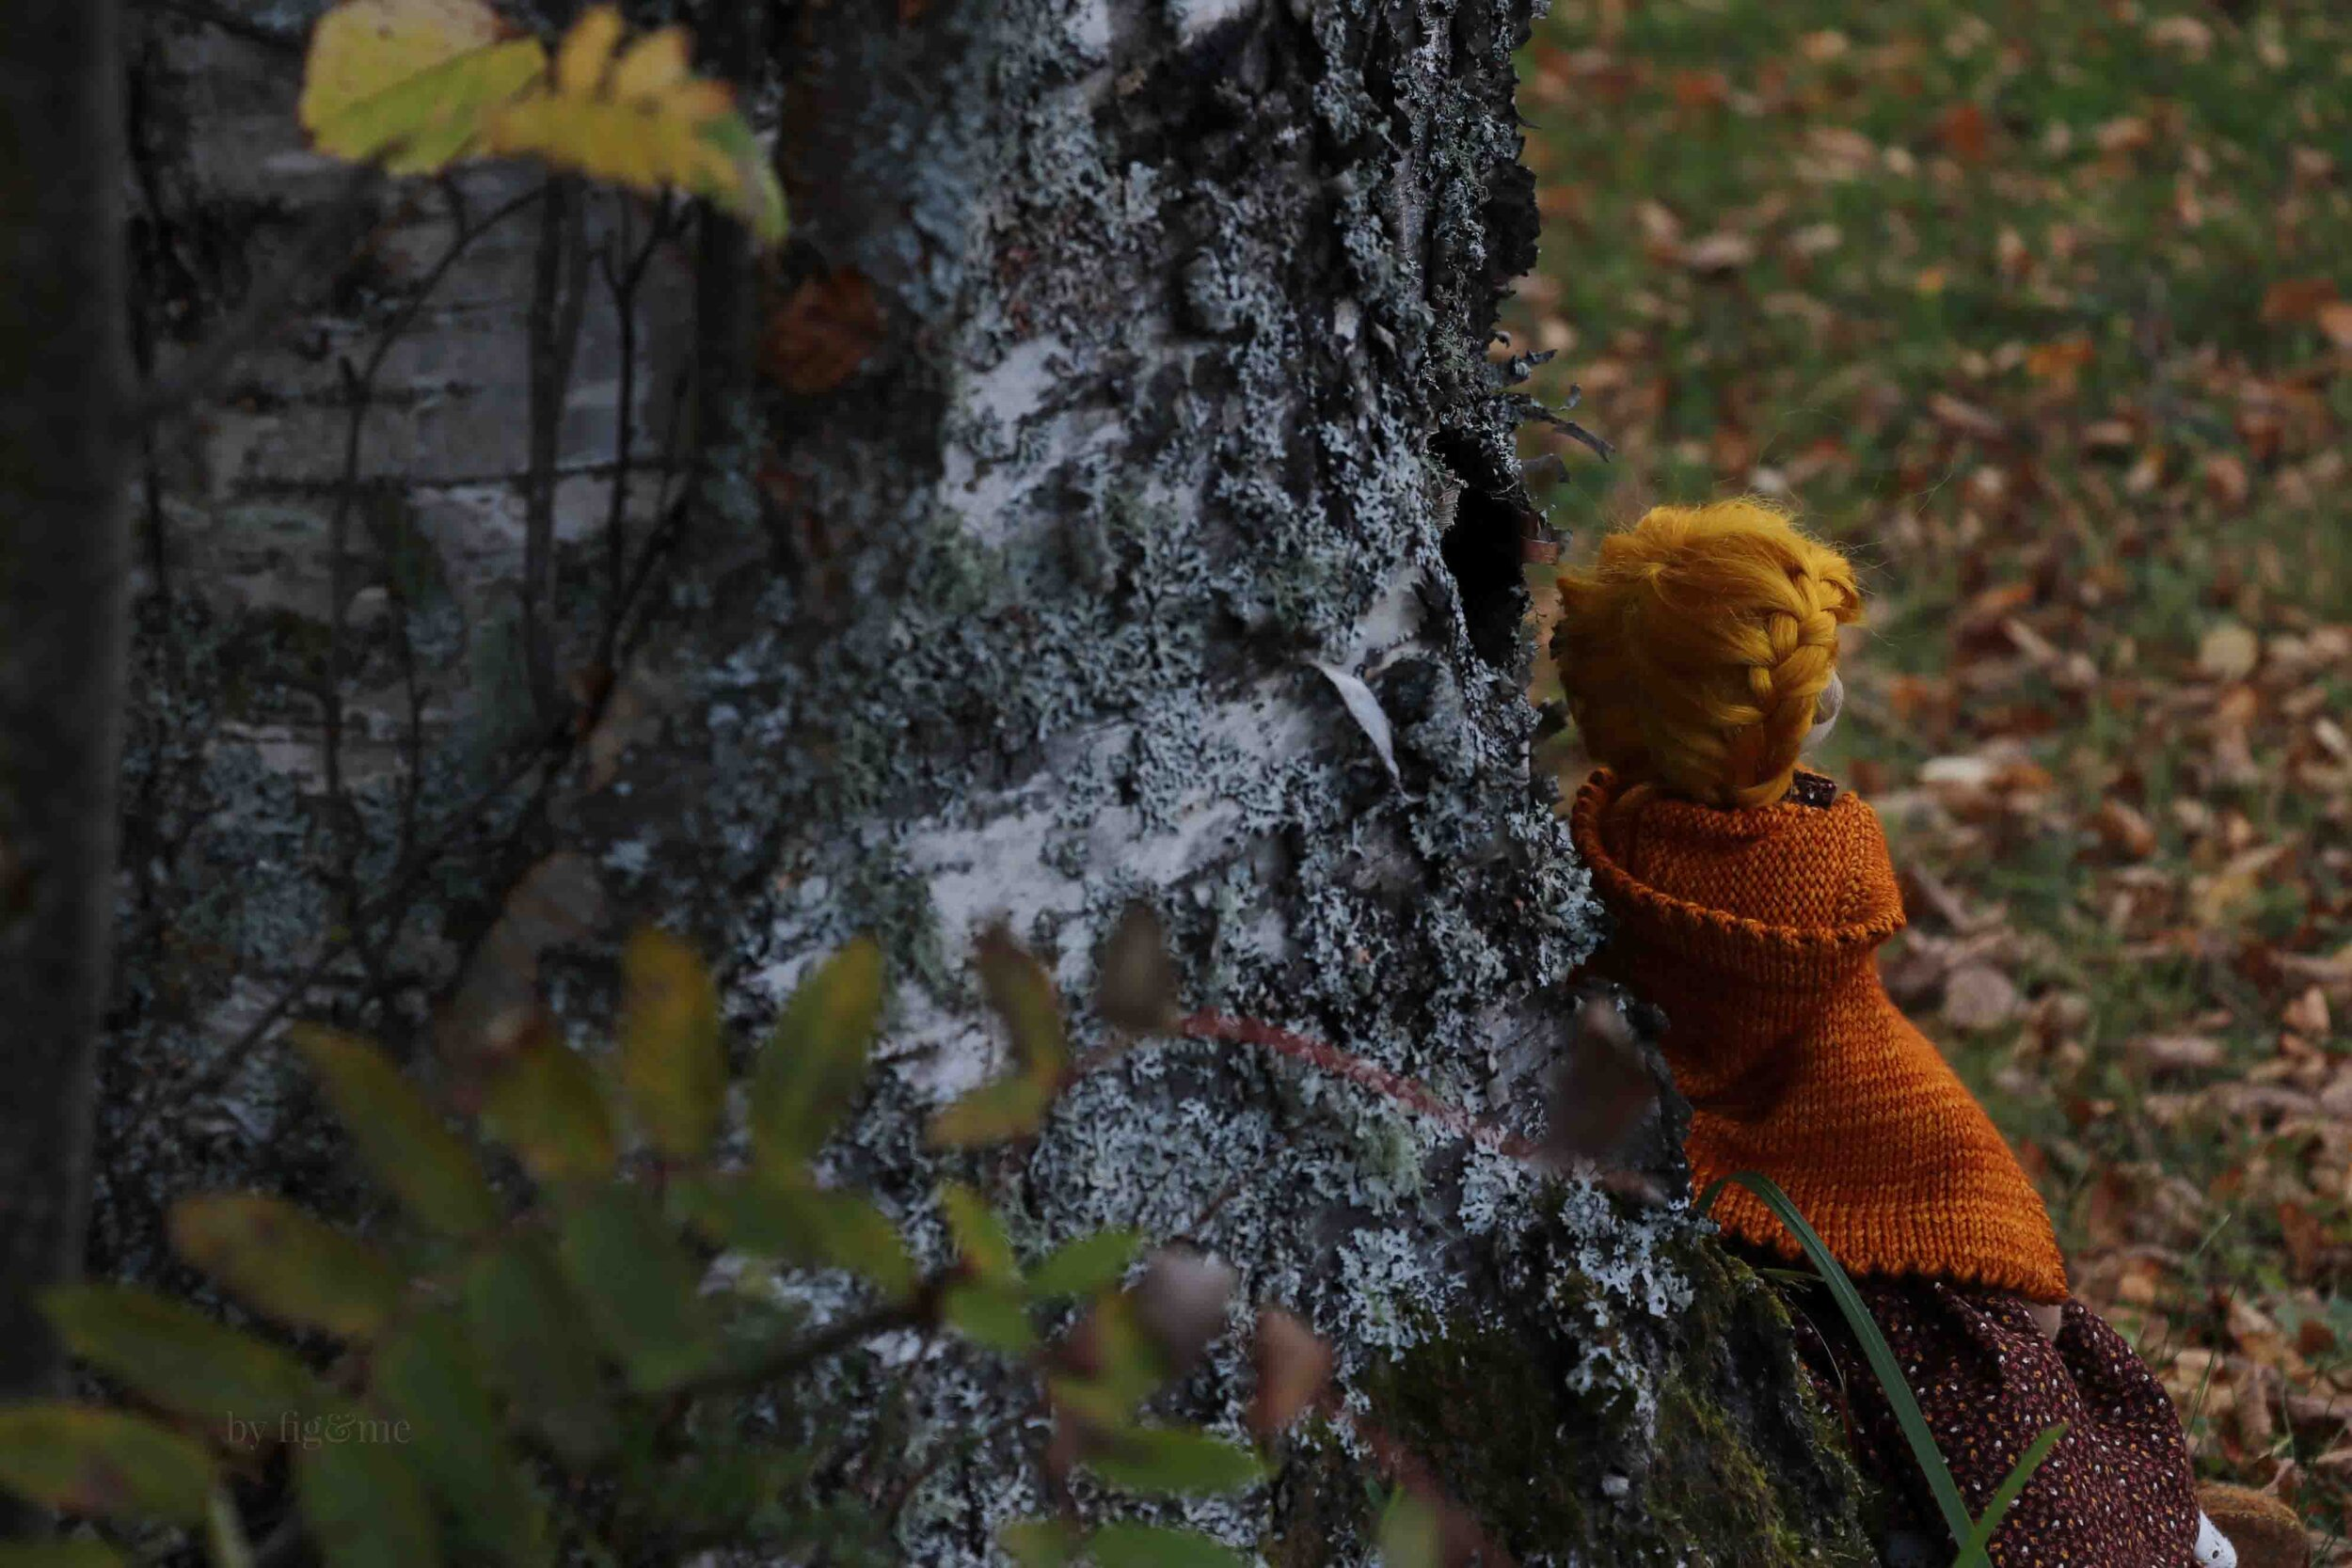 Winona by the birch tree, by fig and me.